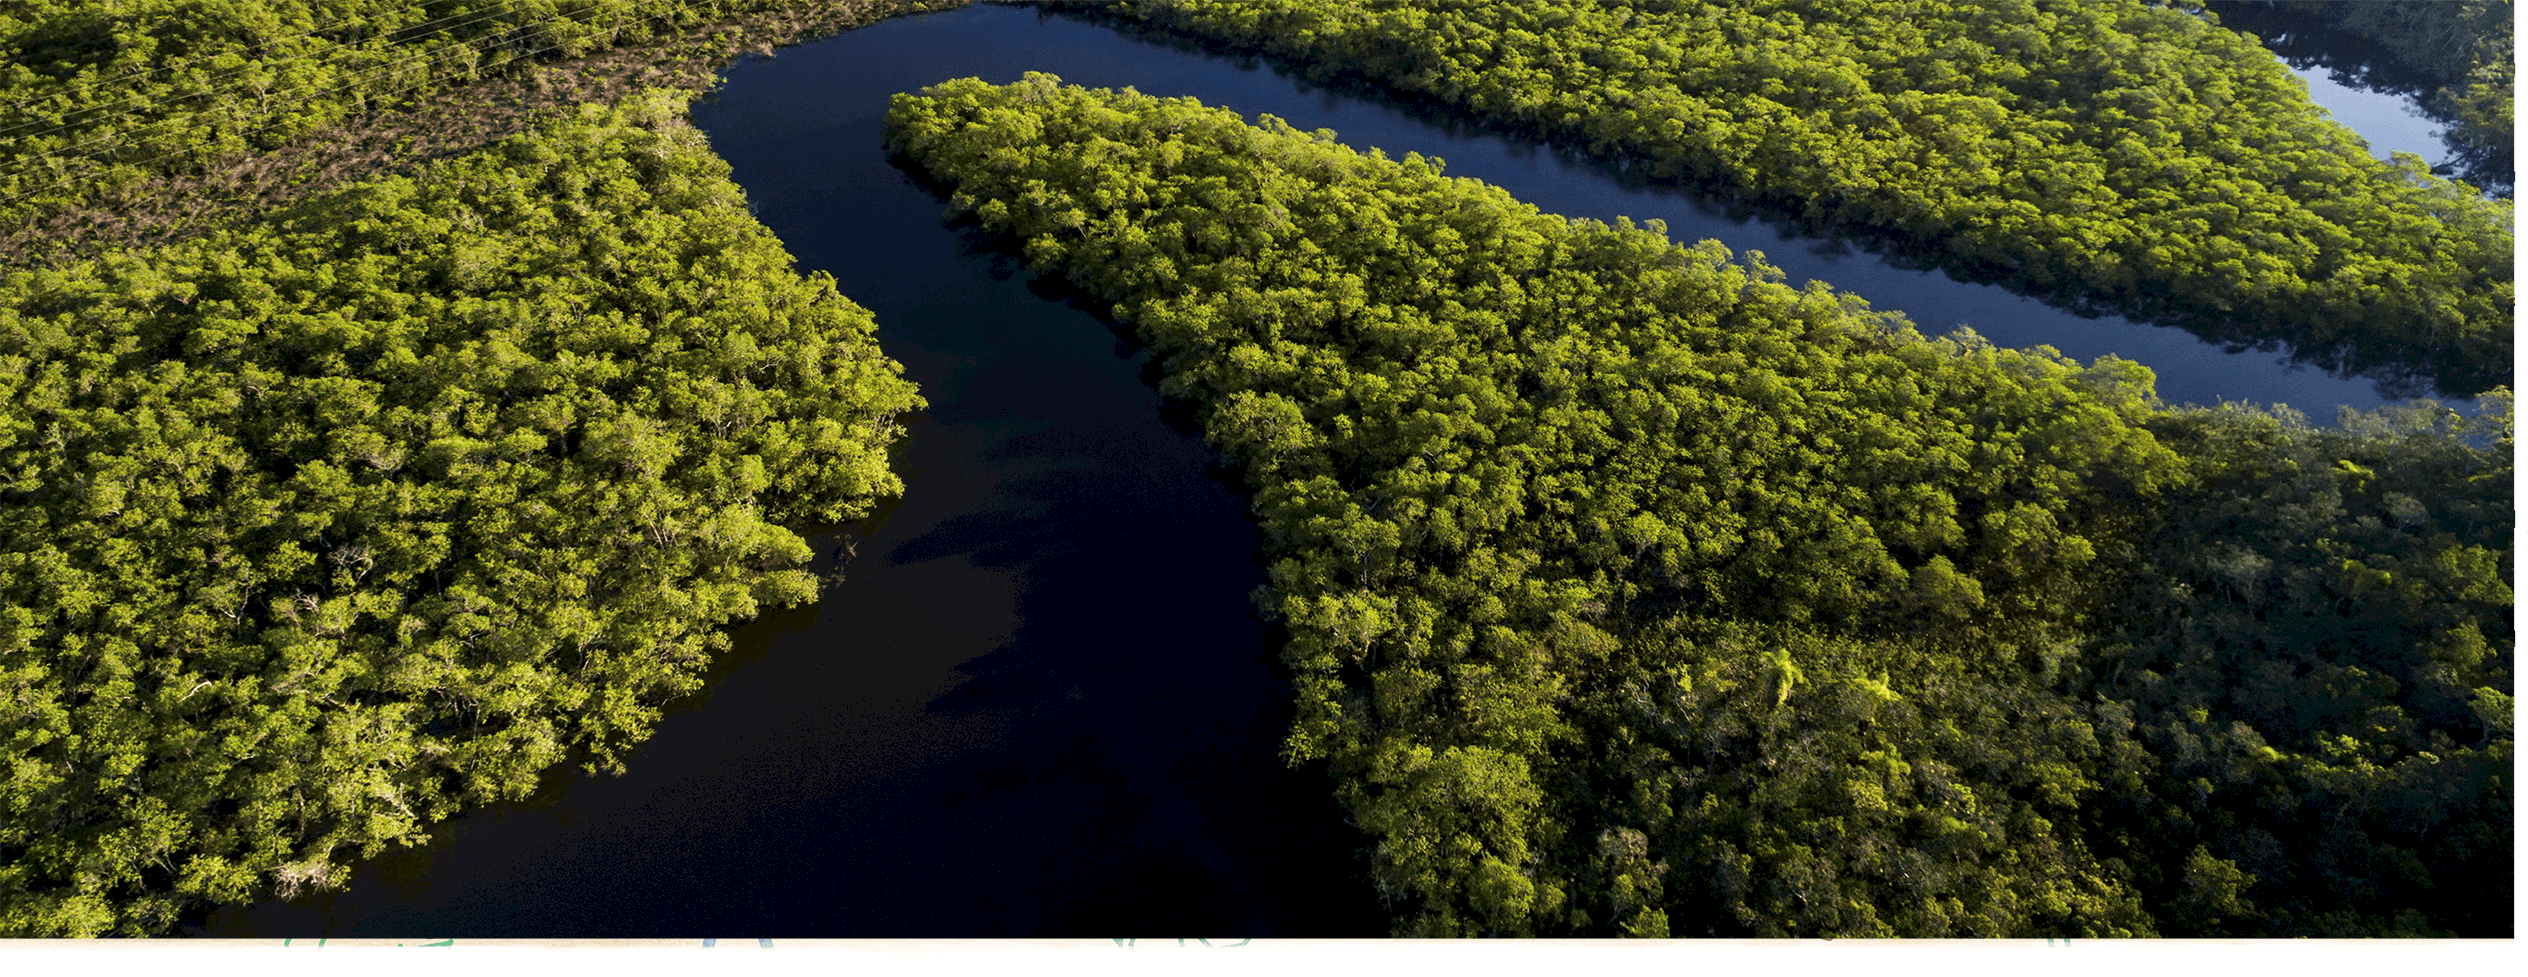 Why the Amazon Matters